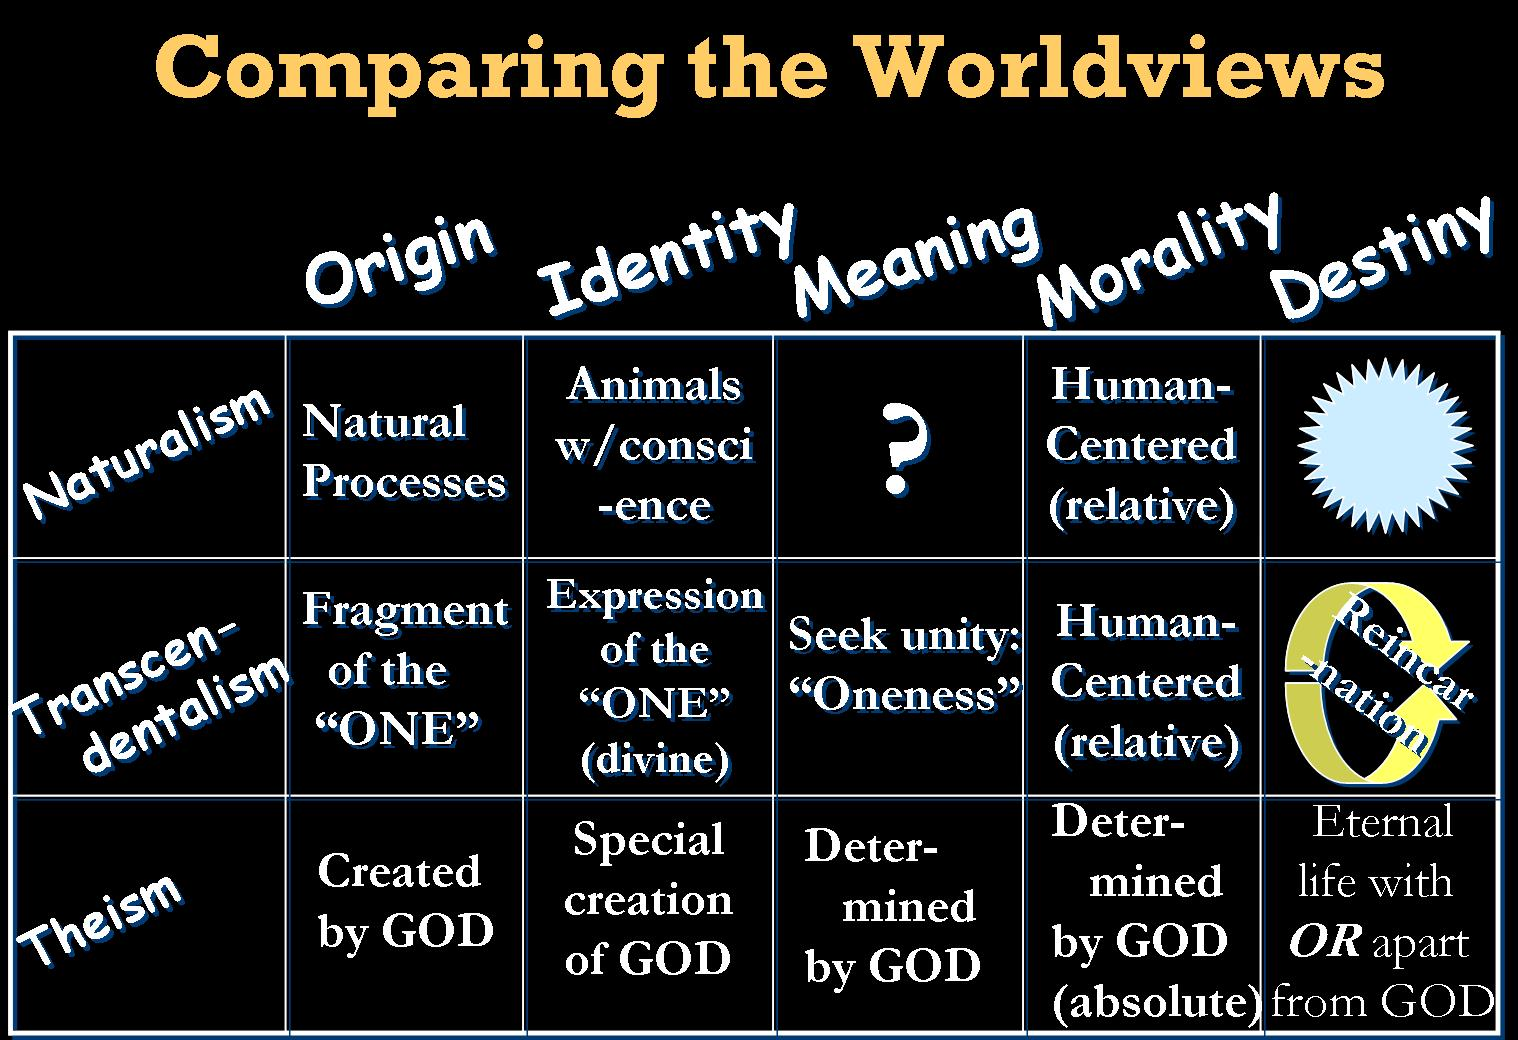 my thoughts about worldviews A personal worldview is comprised of the basic assumptions or concepts we have of the world our worldviews provide structure to our thoughts and actions they might give an answer to key issues like the meaning of life, whether we perceive humans as good or evil or whether we believe in a higher .